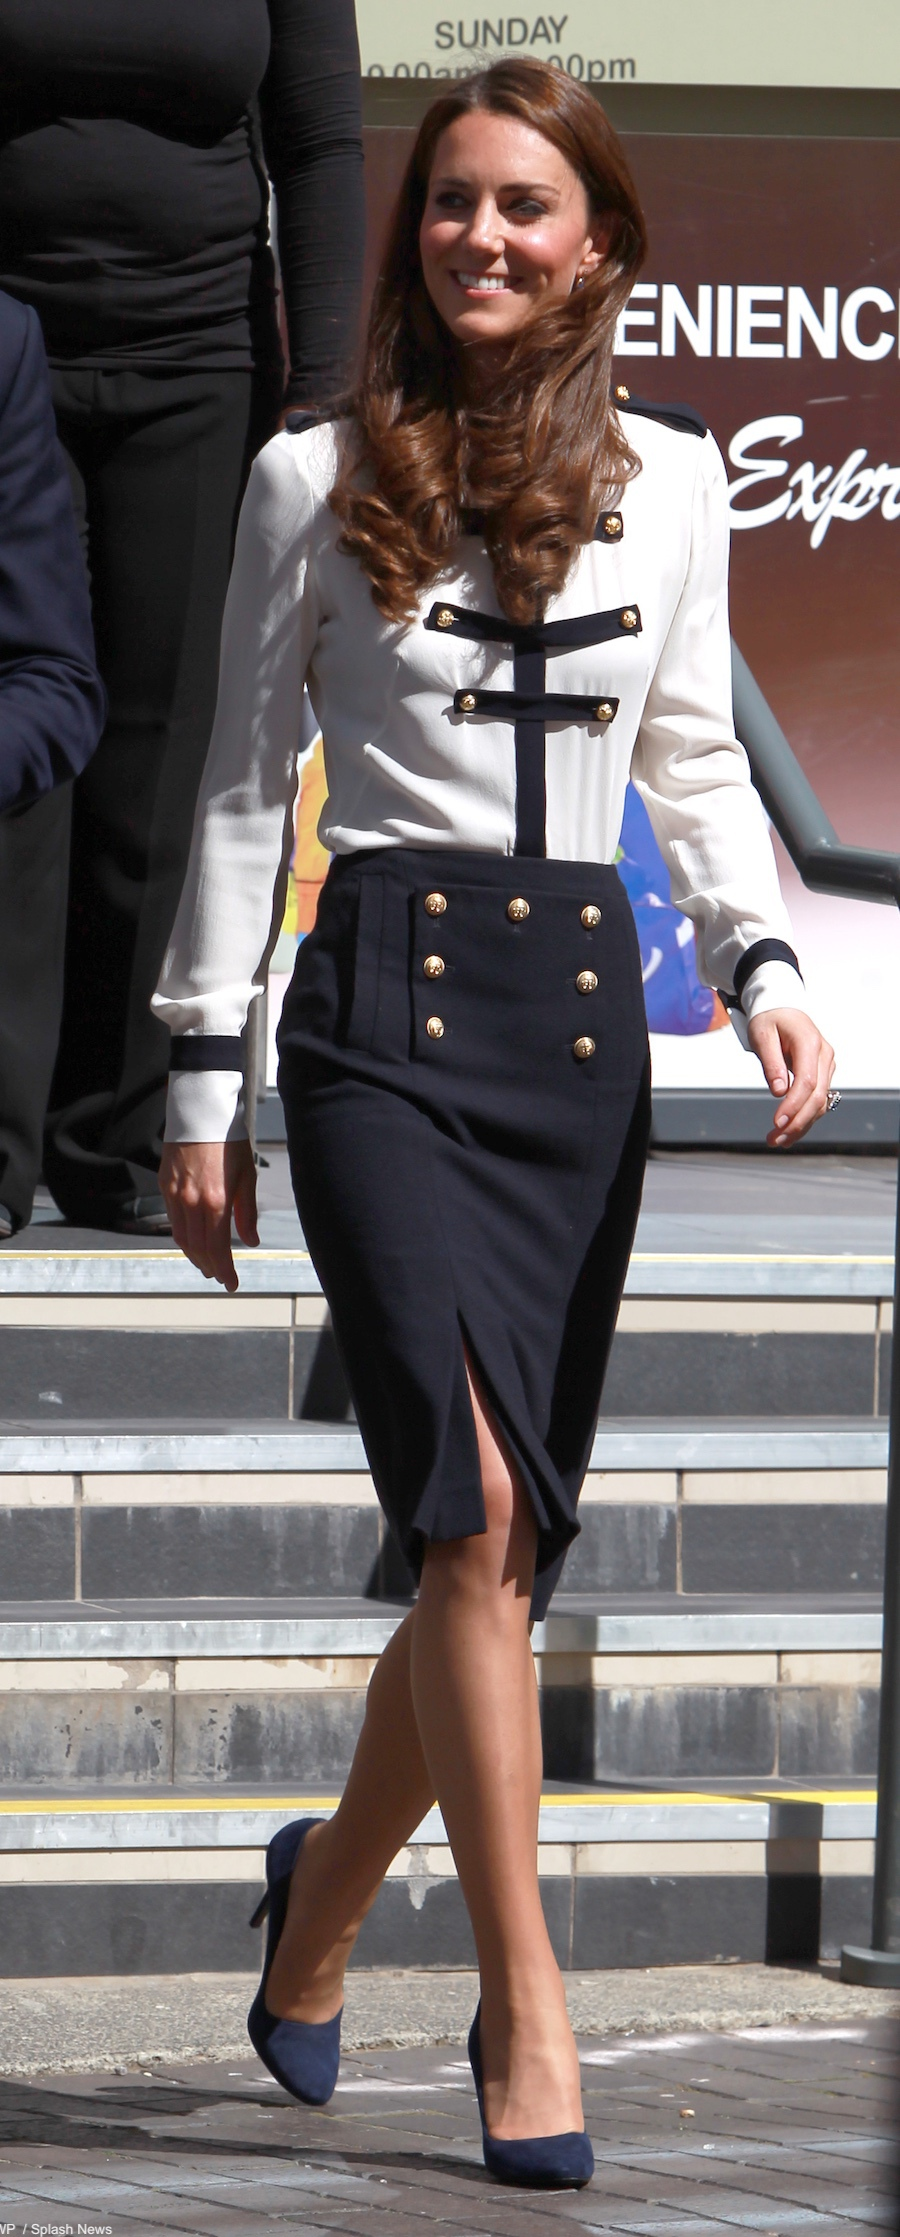 Kate Middleton's Alexander McQueen outfit in Birmingham (2011)